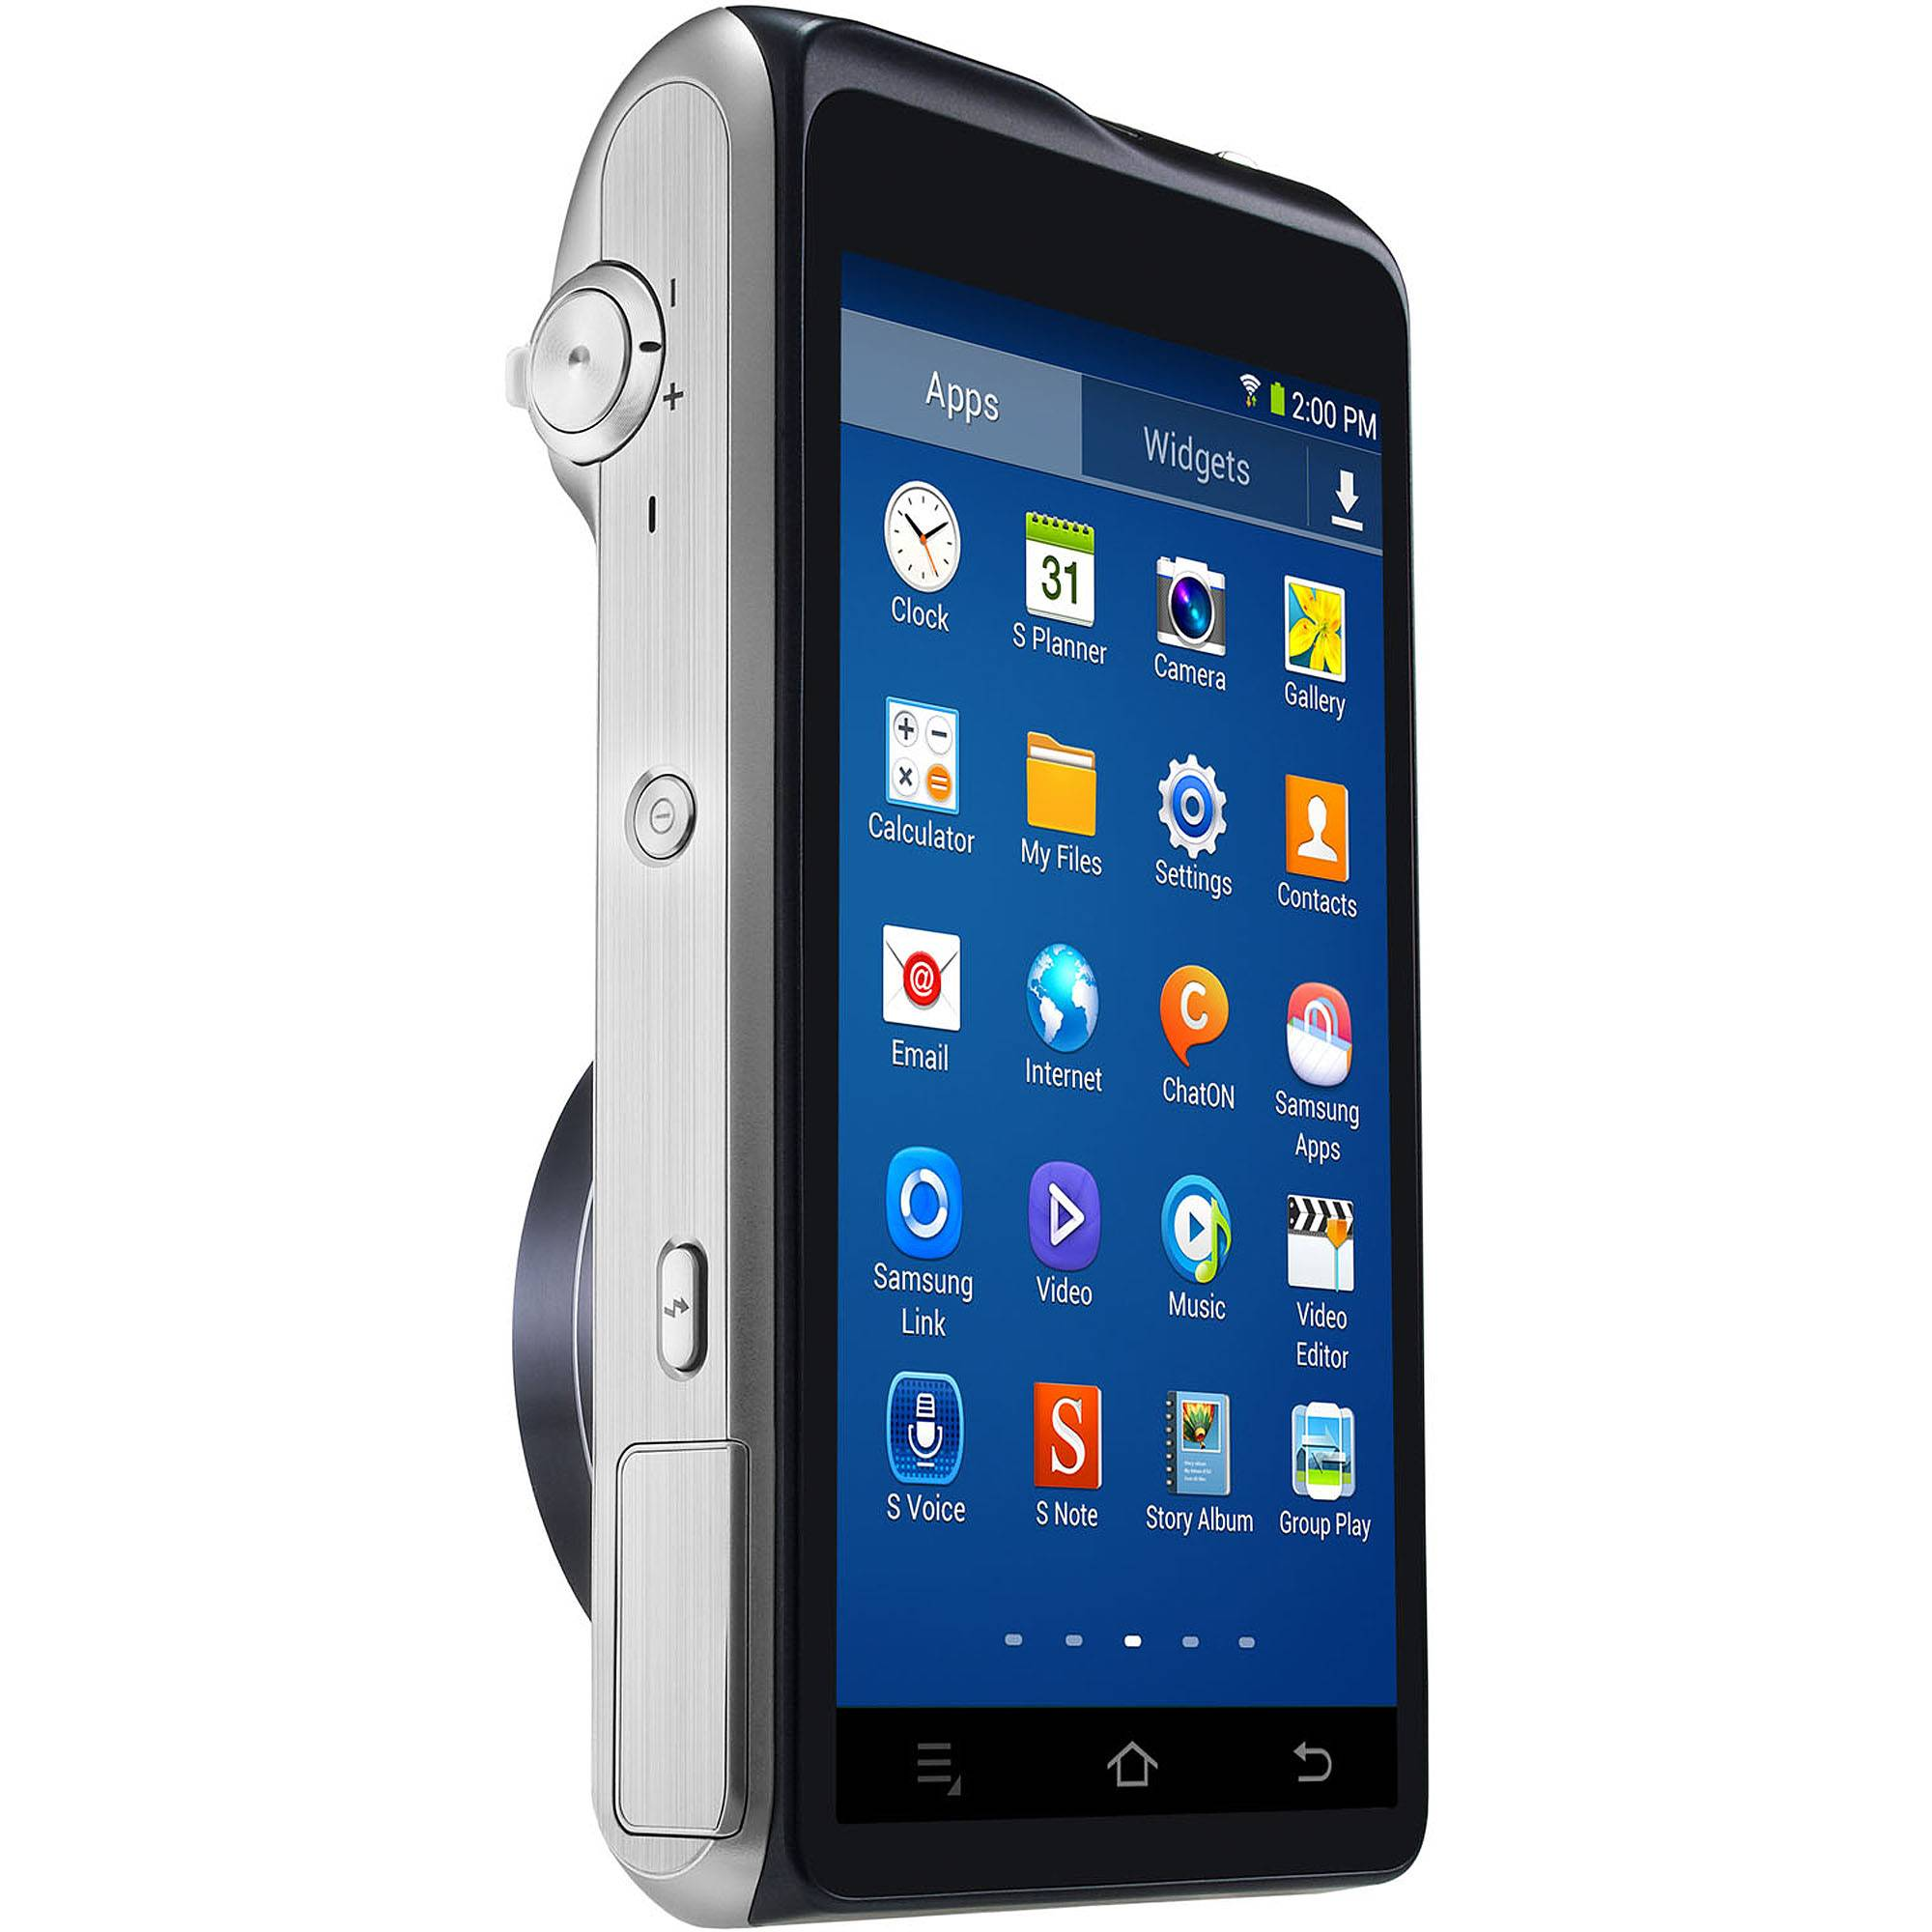 Samsung Galaxy Camera 2 with Android Jelly Bean v4.3 OS, 16.3MP CMOS with 21x Optical  Zoom and 4.8 Touch Screen LCD (WiFi & NFC